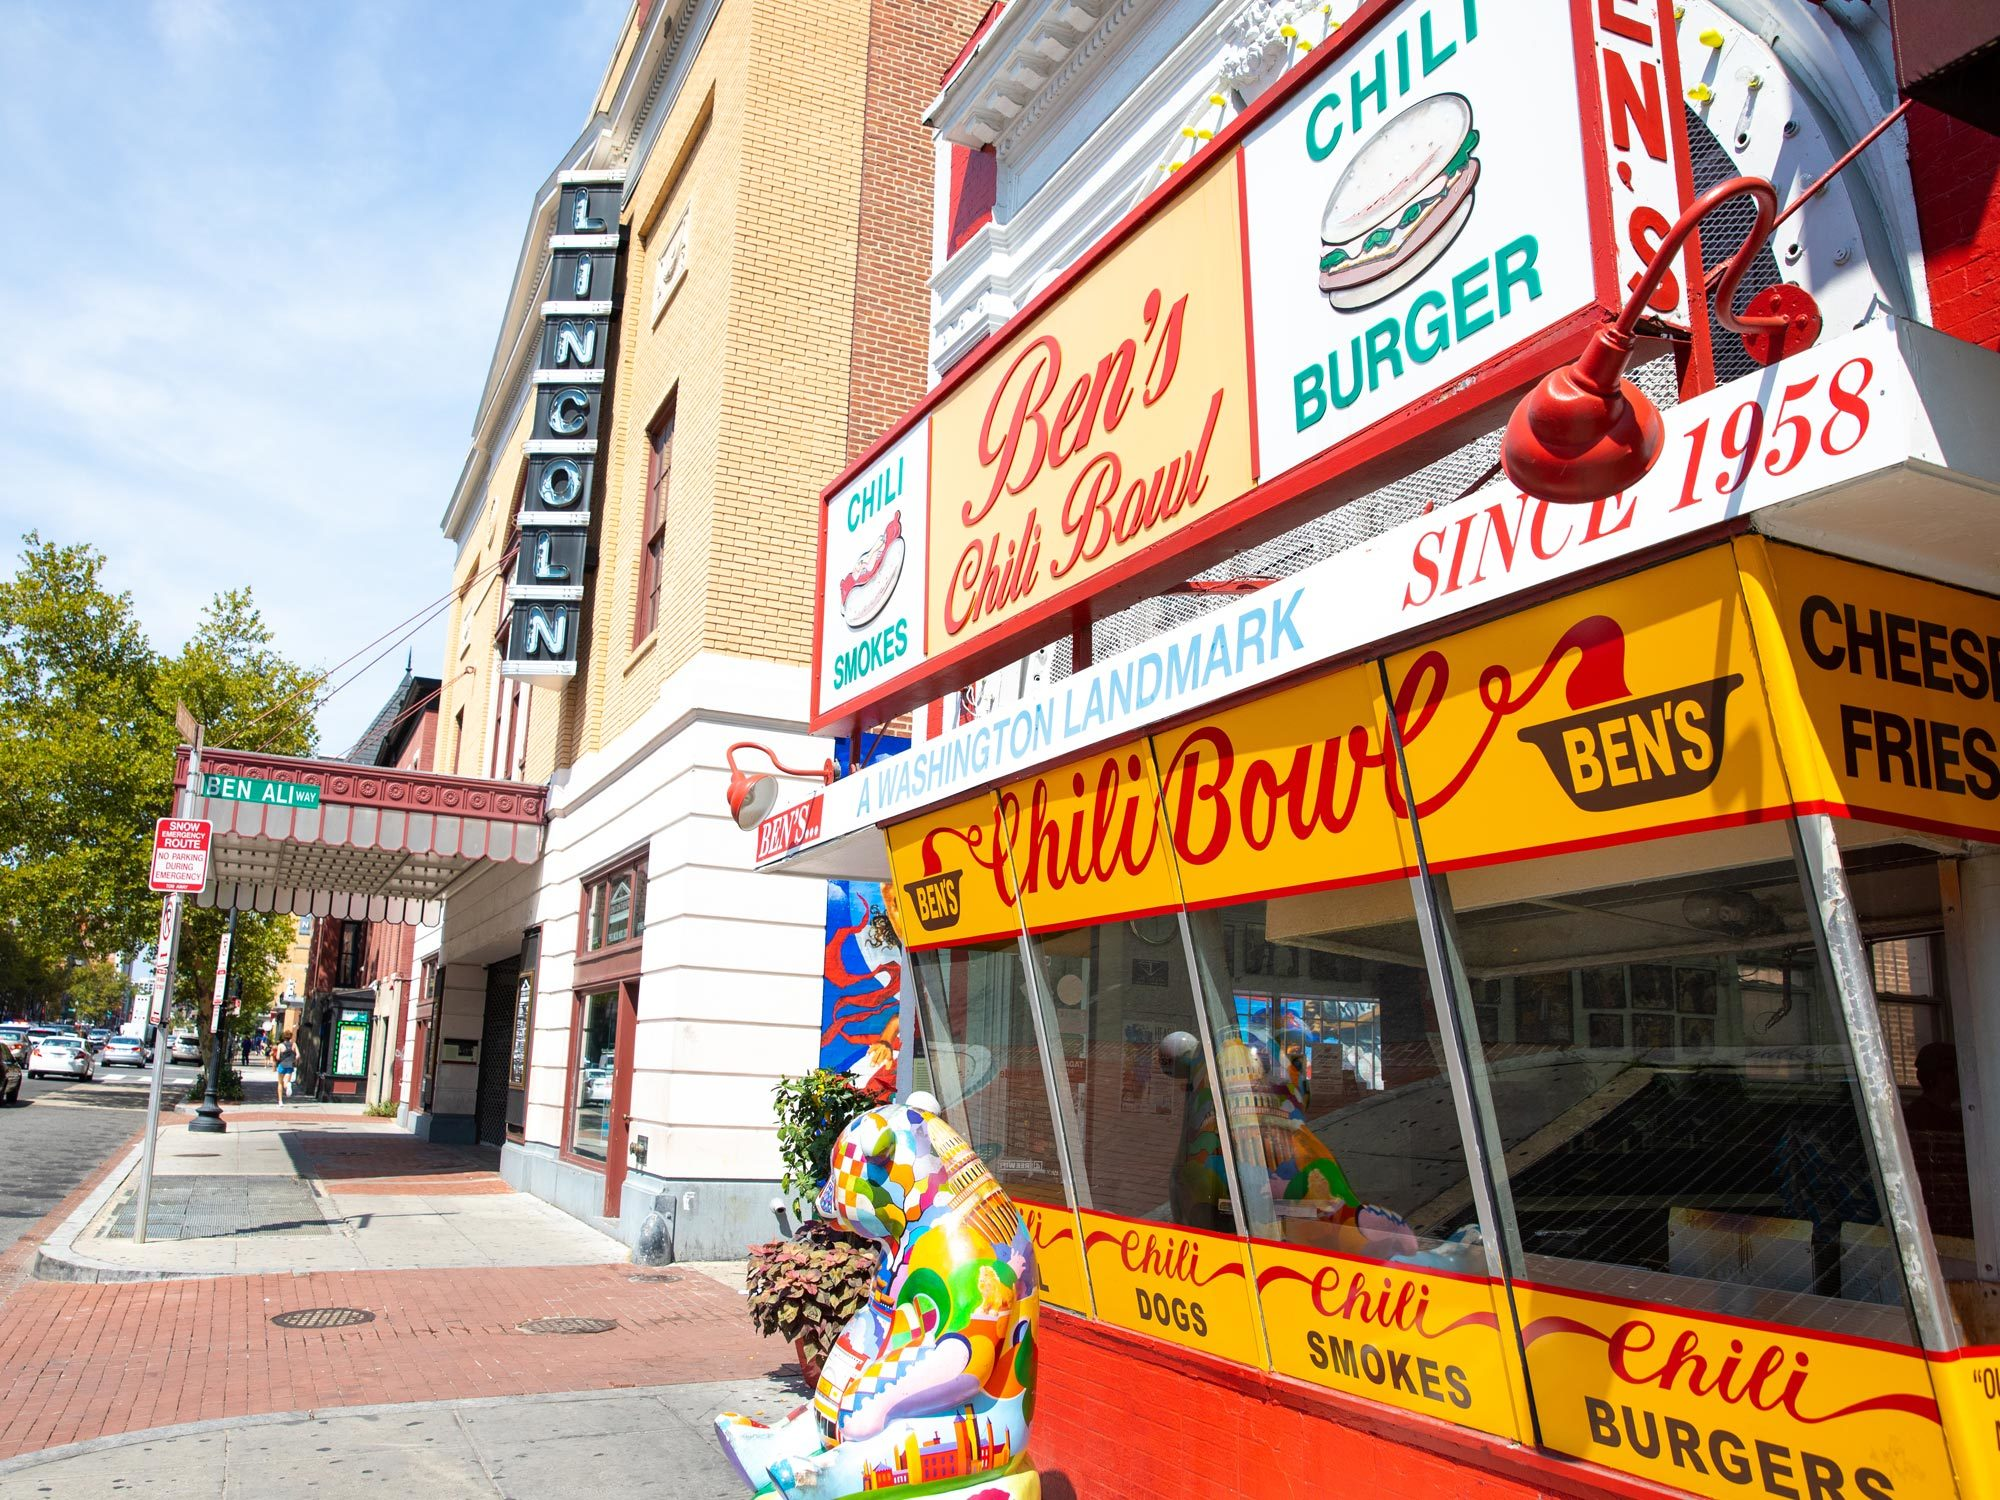 A photo of the iconic Ben's Chili Bowl restaurant.